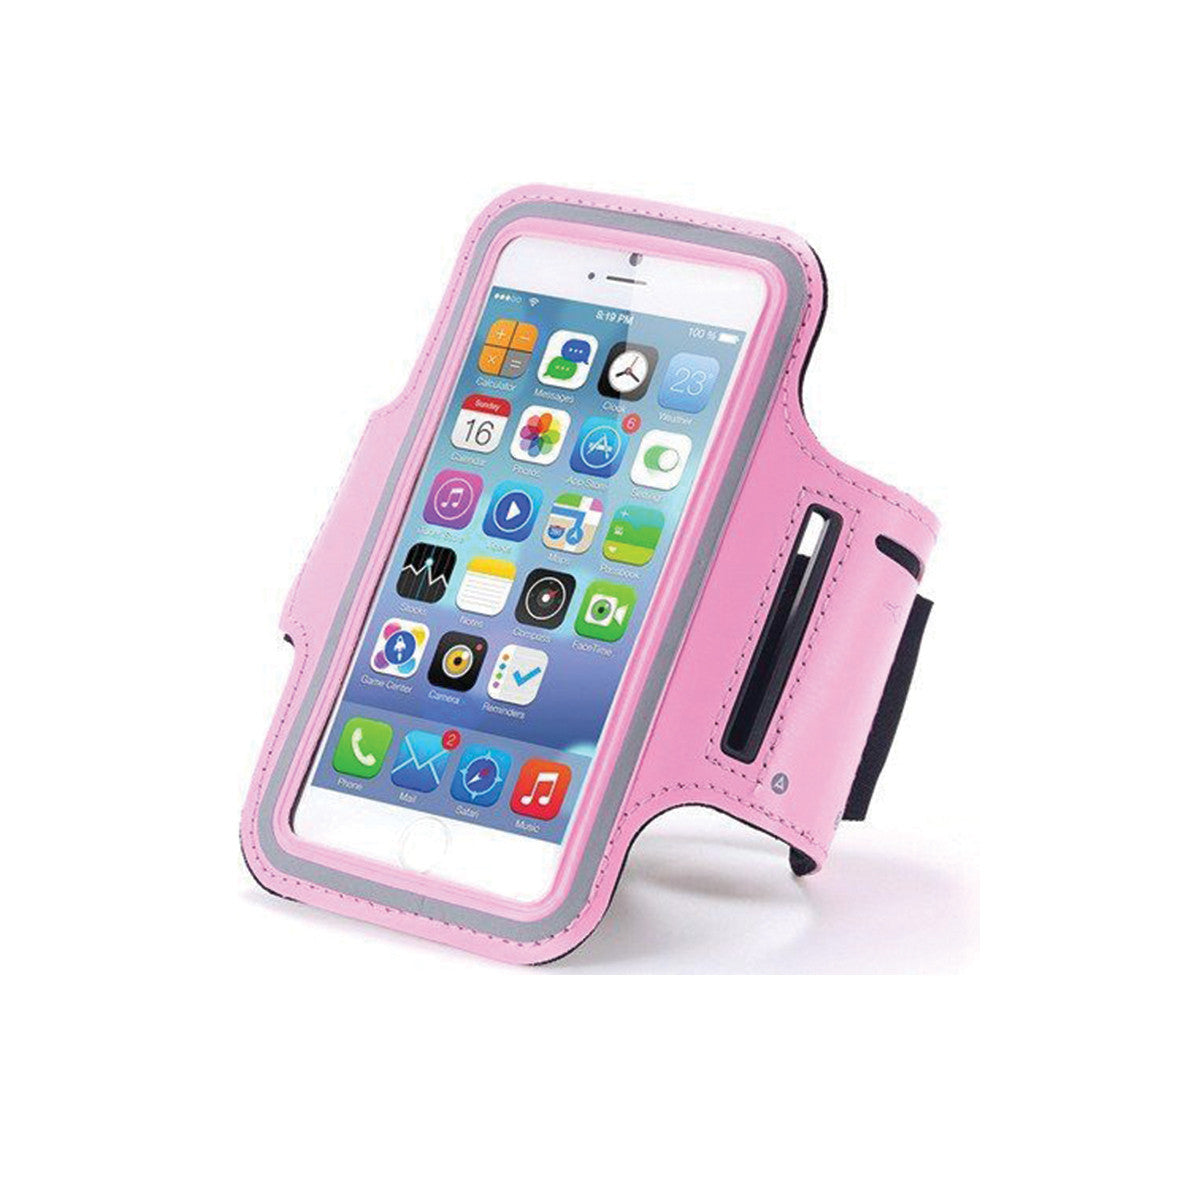 Gym Running Armband For Apple iPhone 5 6 7 & Plus